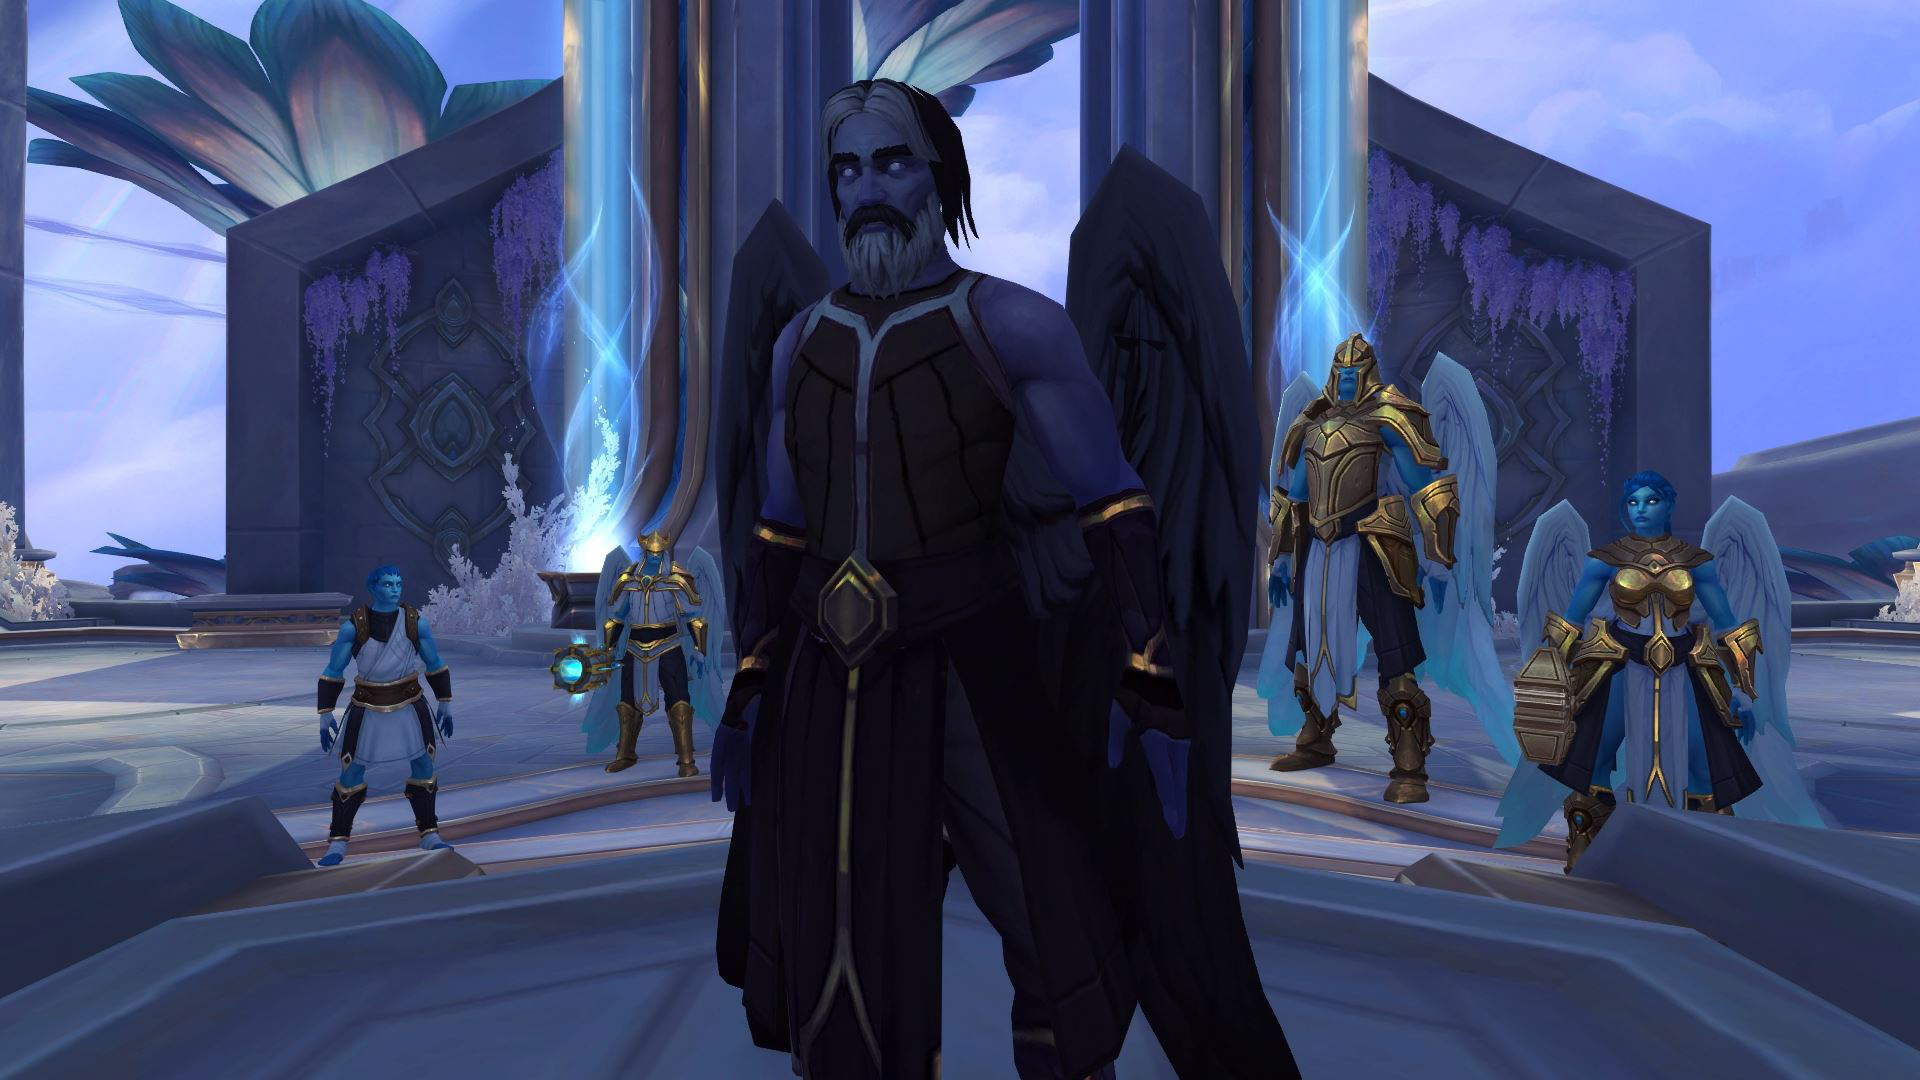 Uther et ses compagnons Kyrians